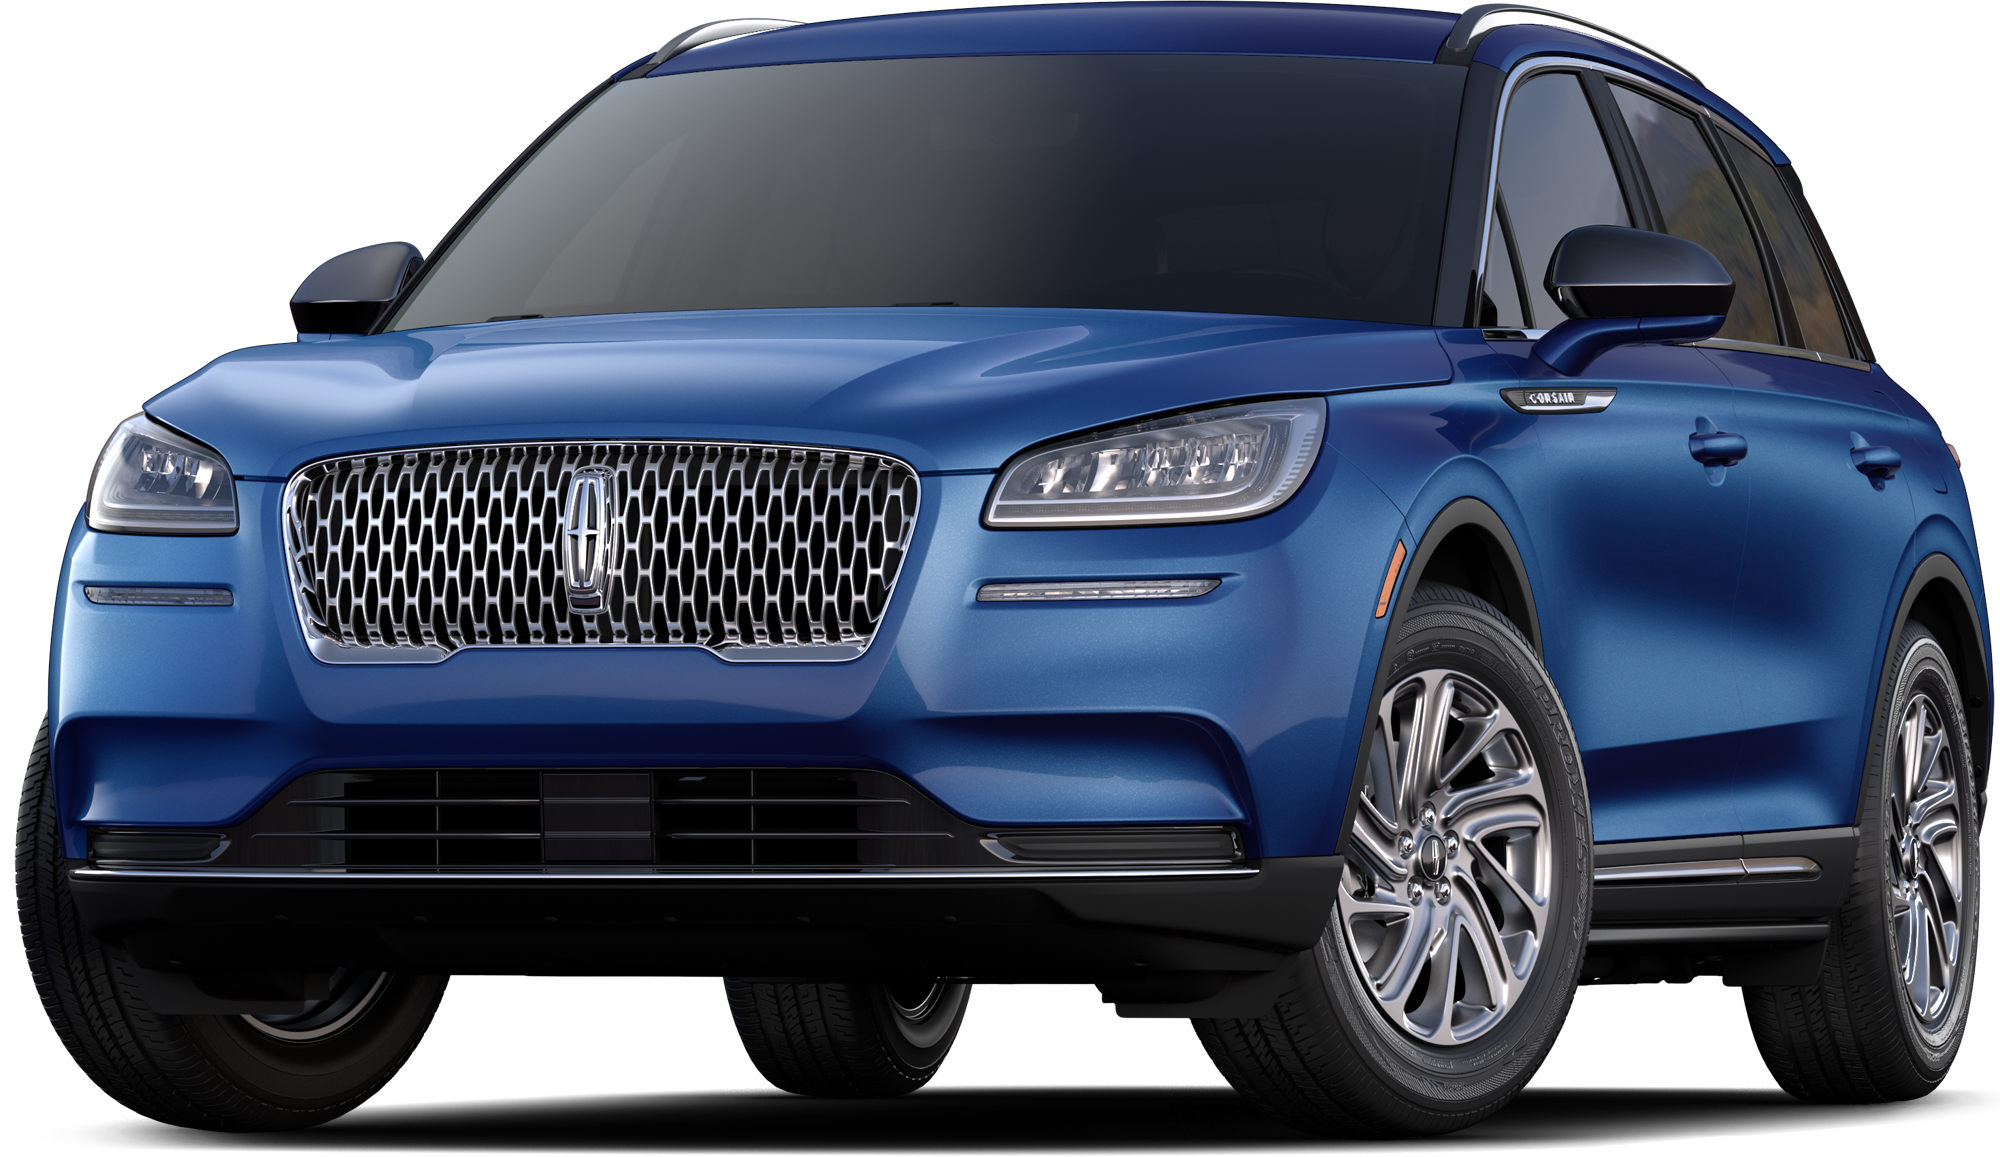 2021 Lincoln Corsair Incentives, Specials & Offers in ...